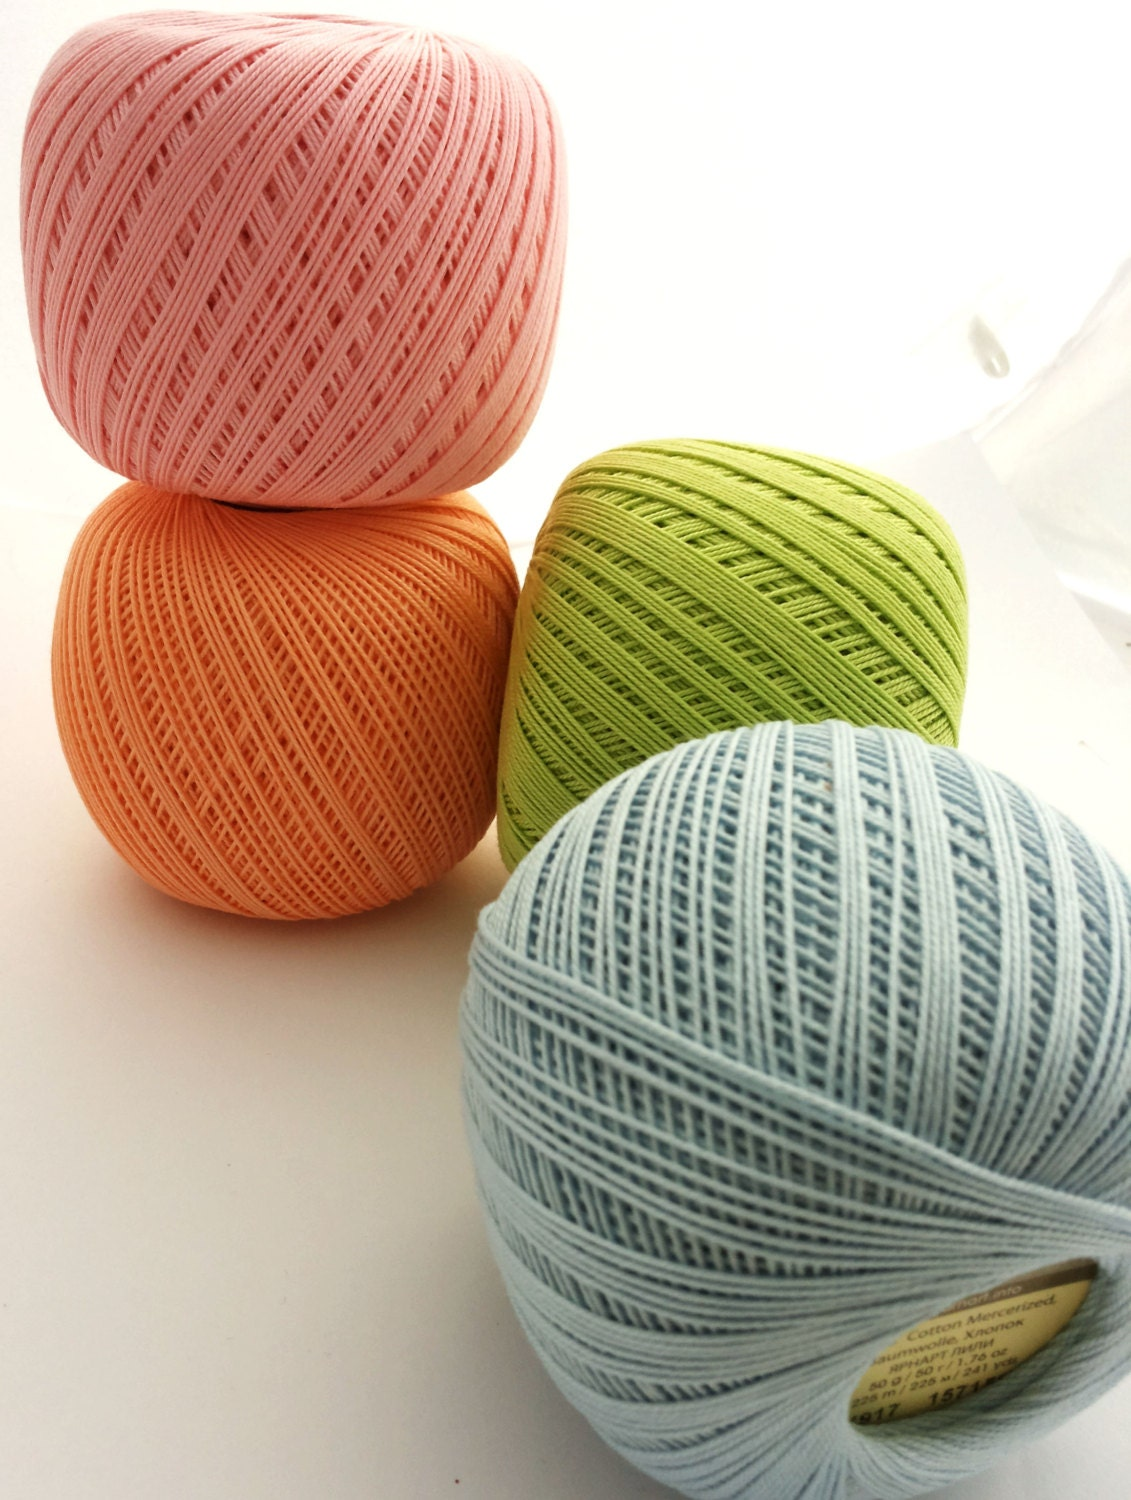 crochet cotton yarn 10 size 10 thread 3 ply by Fiscraftland